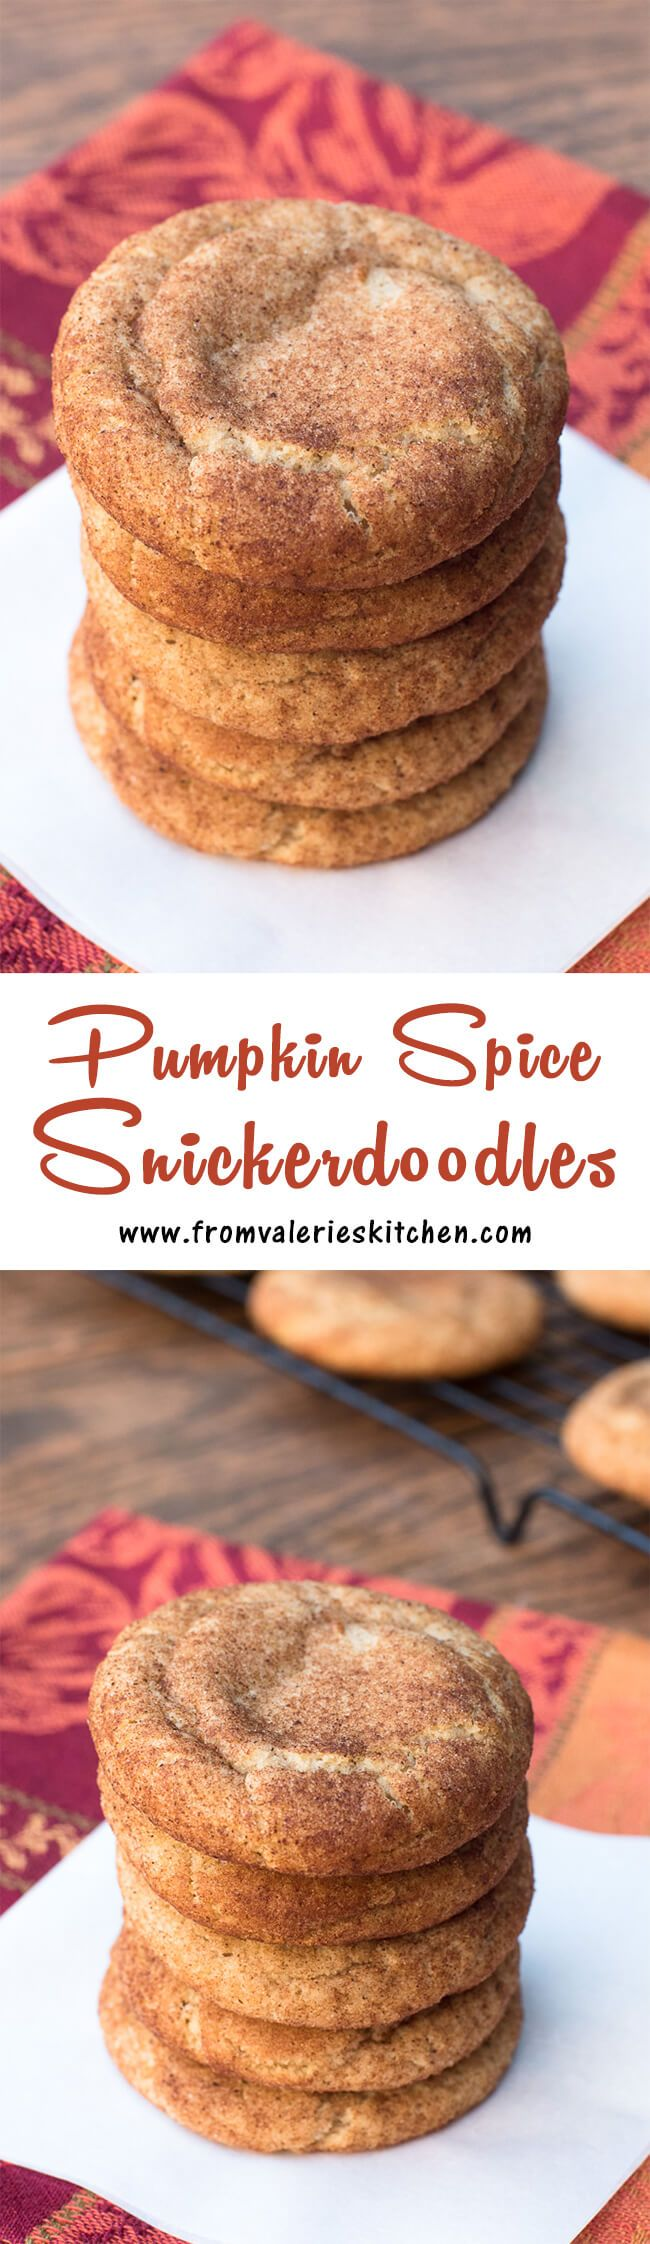 Classic snickerdoodles are dressed up for fall with the addition of pumpkin pie spice These delicious Pumpkin Spice Snickerdoodles are a great way to start off your fall...